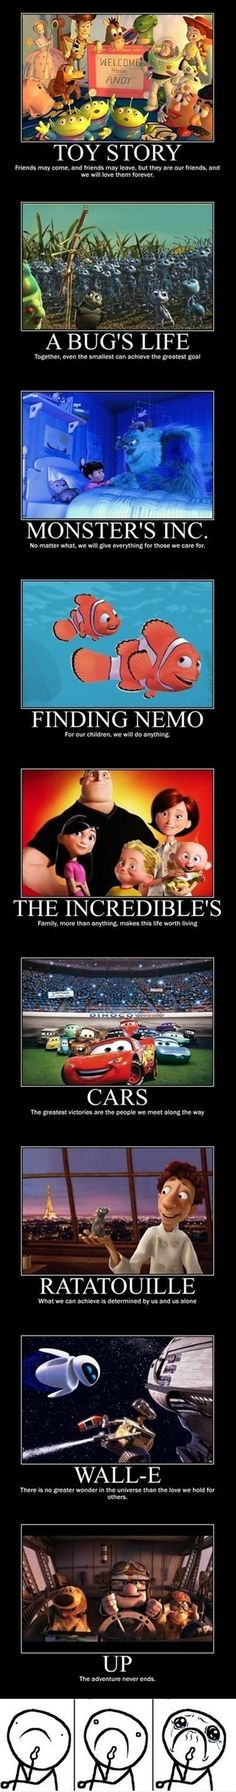 Pixar...How can you NOT LOVE IT! The end...that's me when watching all of these movies basically.